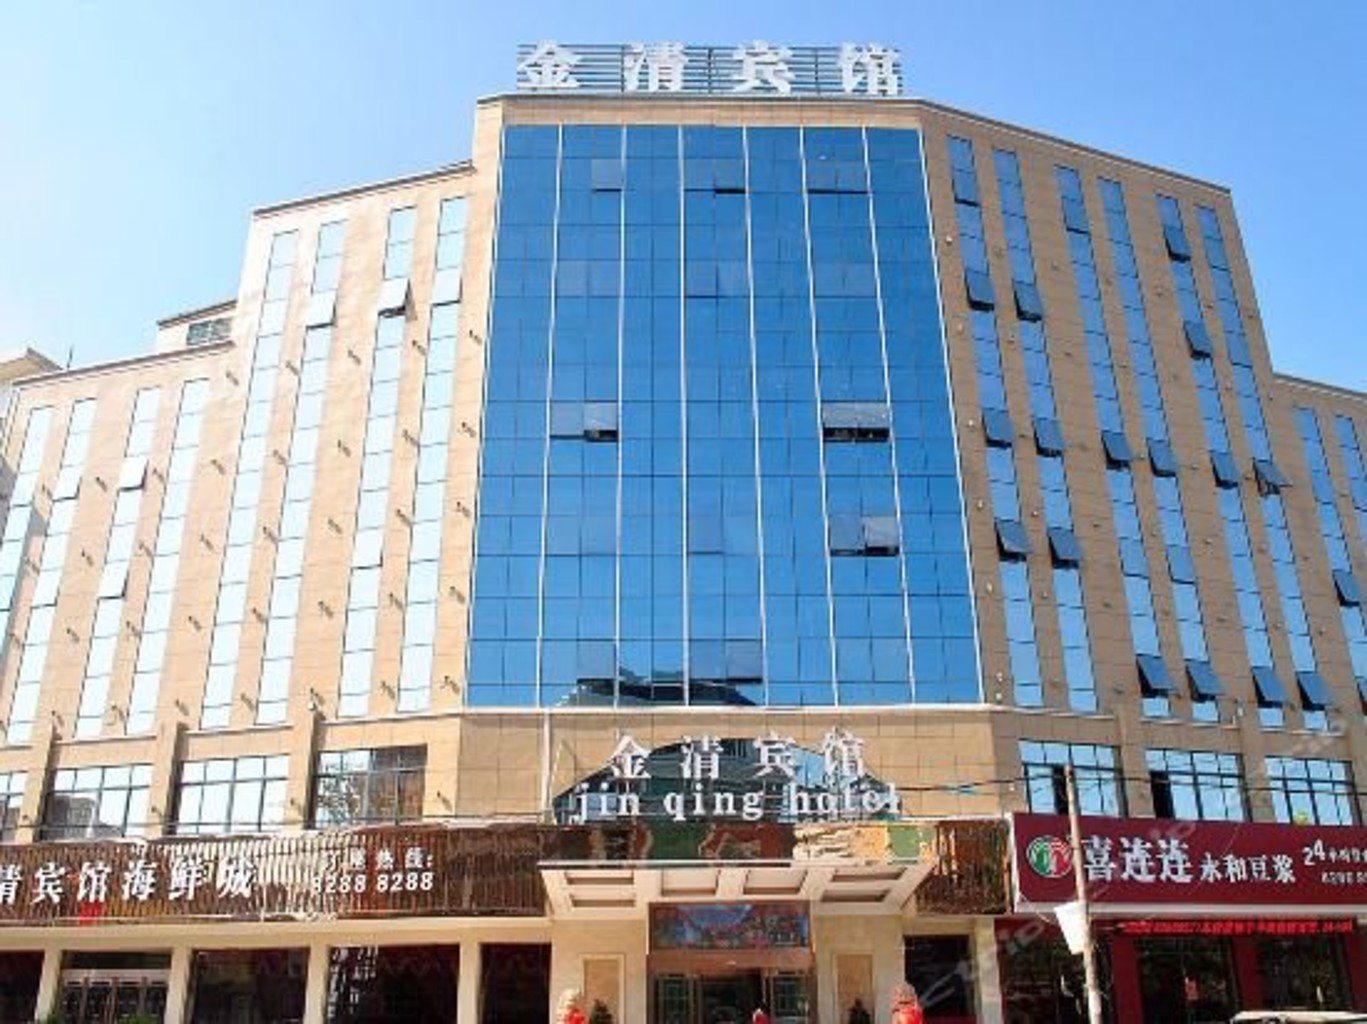 Gallery image of Jinqing Hotel